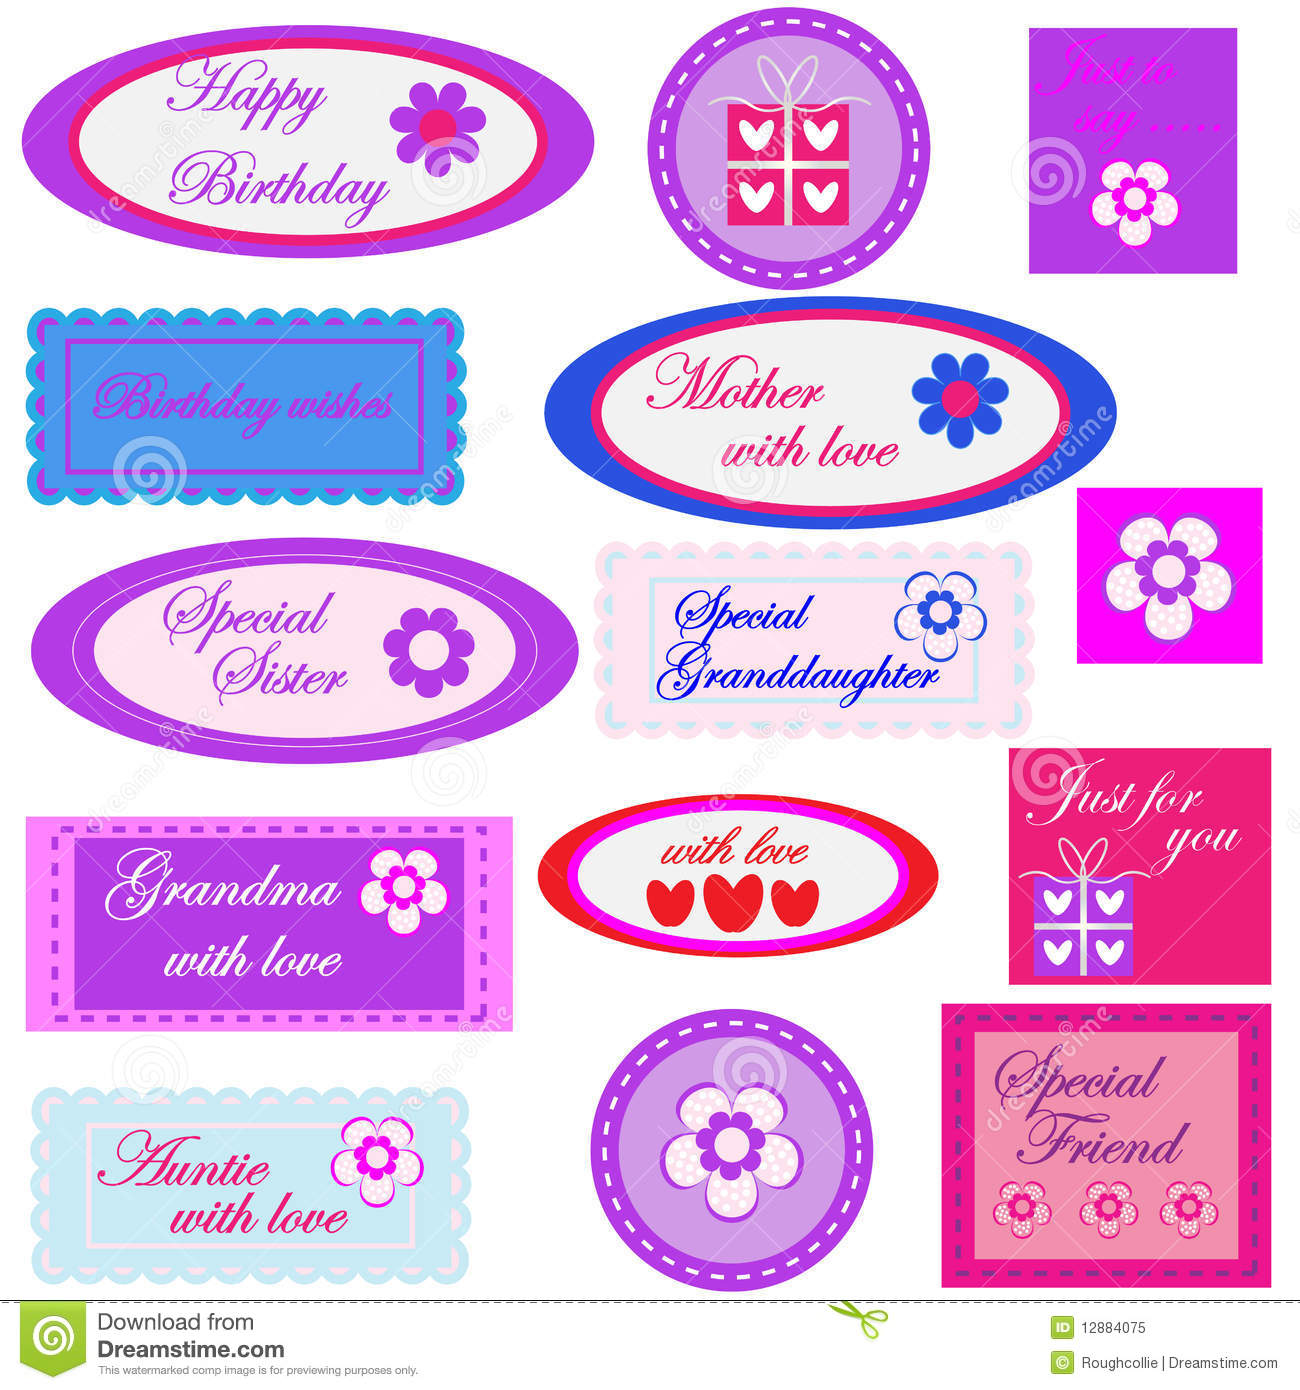 birthday favor tags template ; birthday-gift-labels-tags-12884075